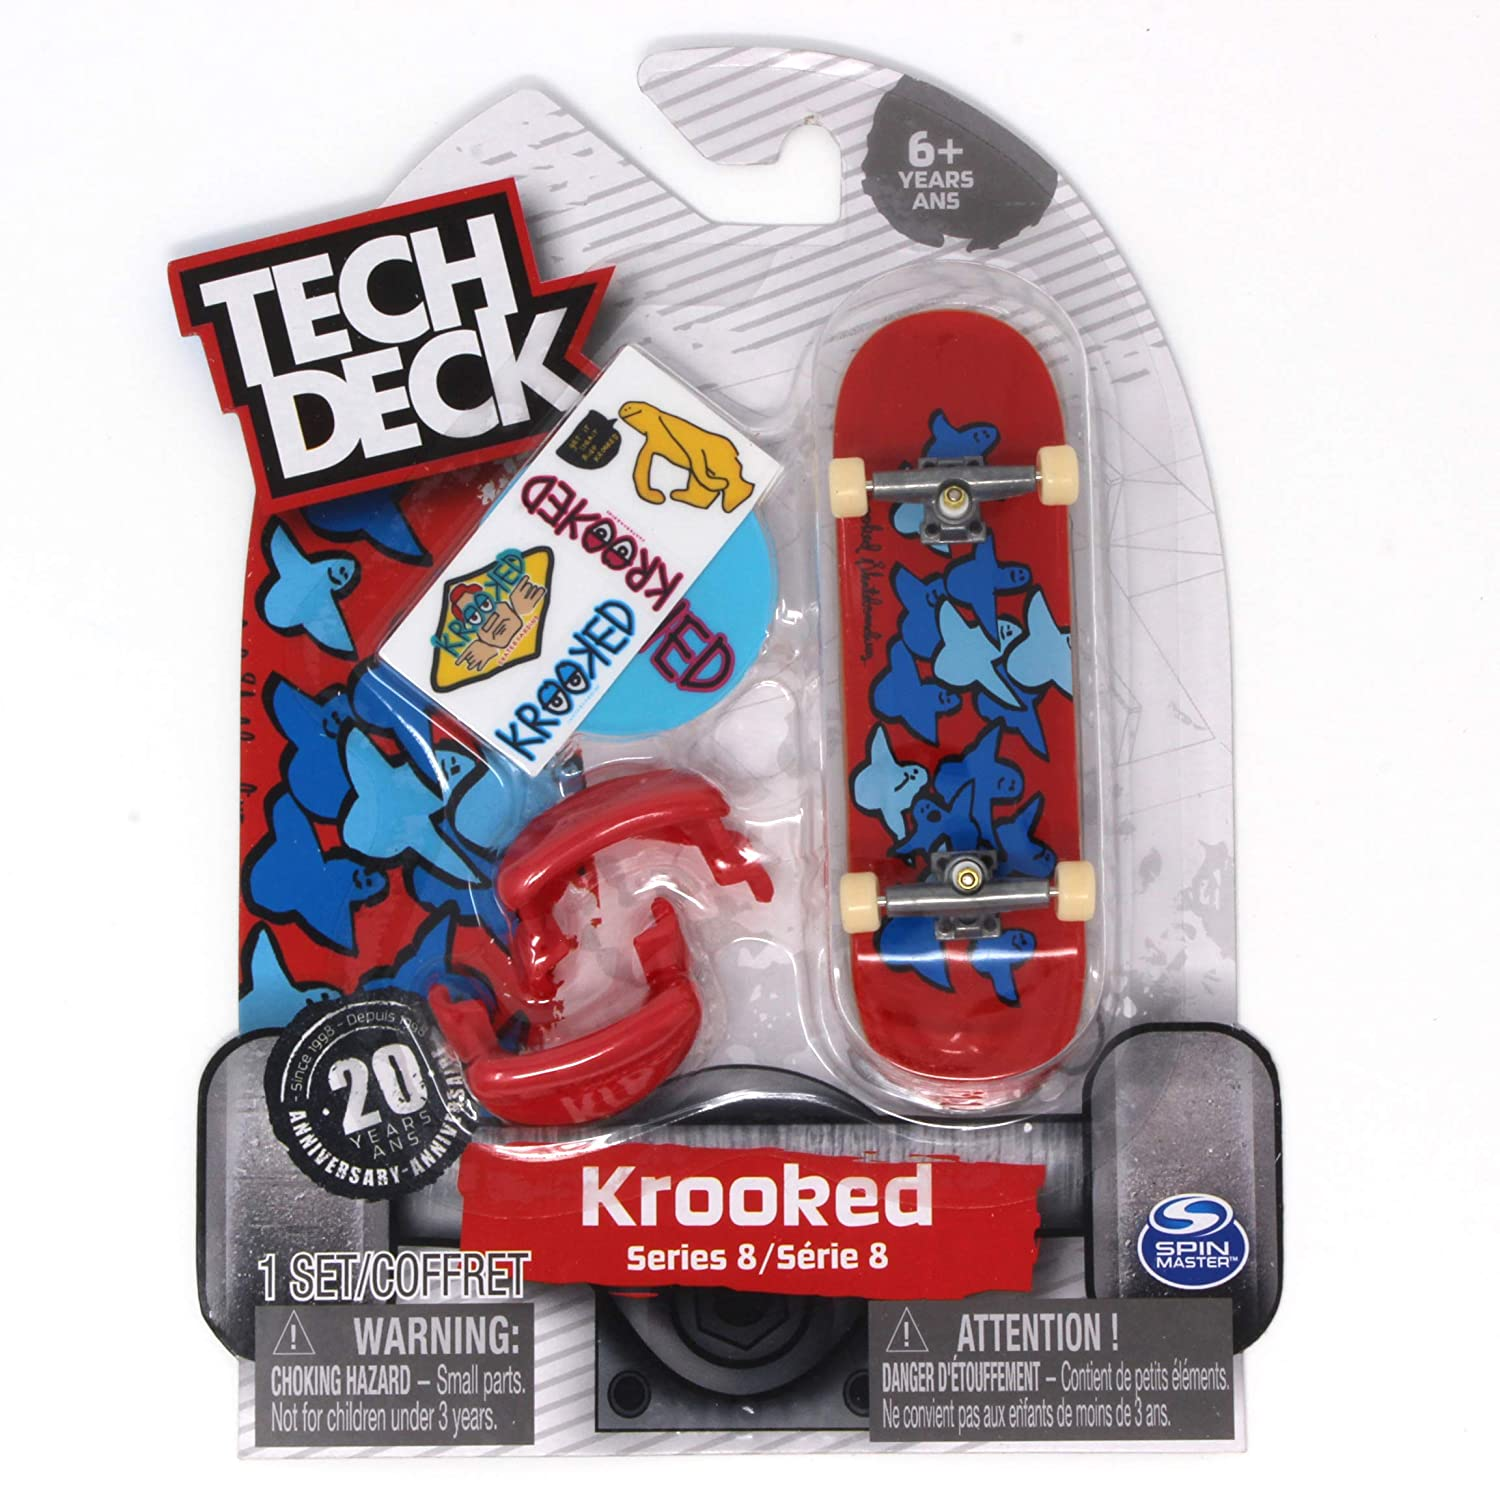 Tech Deck Series 8 Krooked Skateboards Birds Slick II Red Blue Rare Fingerboard with Trainer Clips